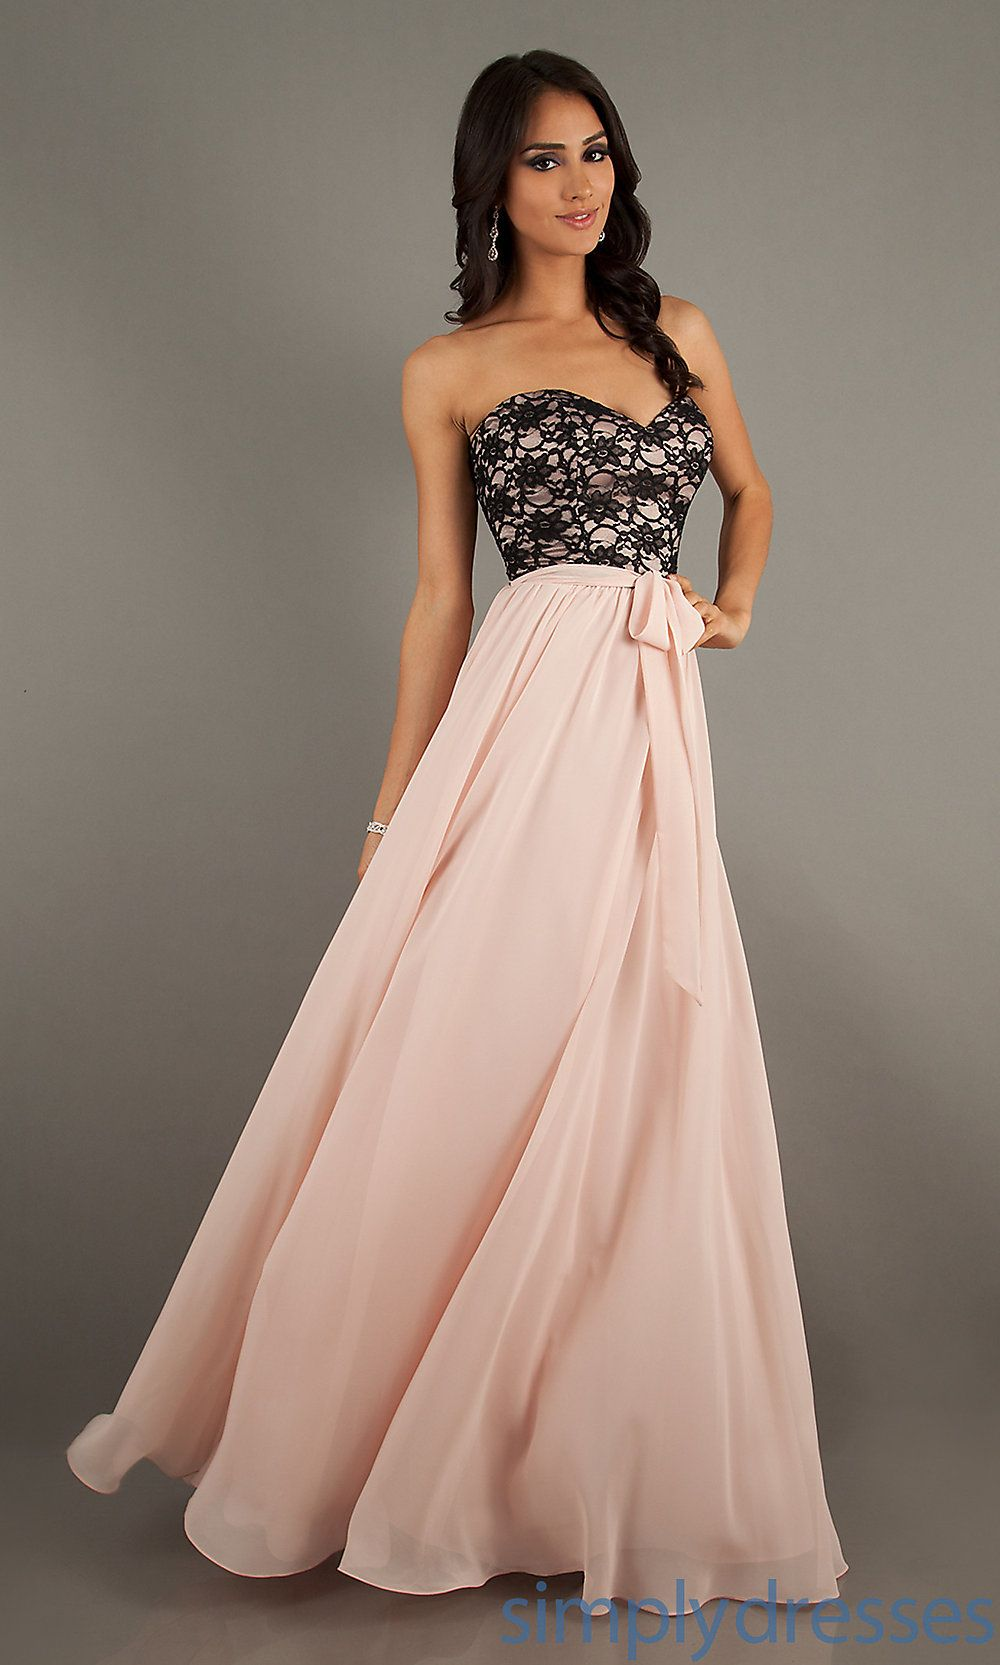 78  images about Prom dresses on Pinterest  One shoulder Pink ...